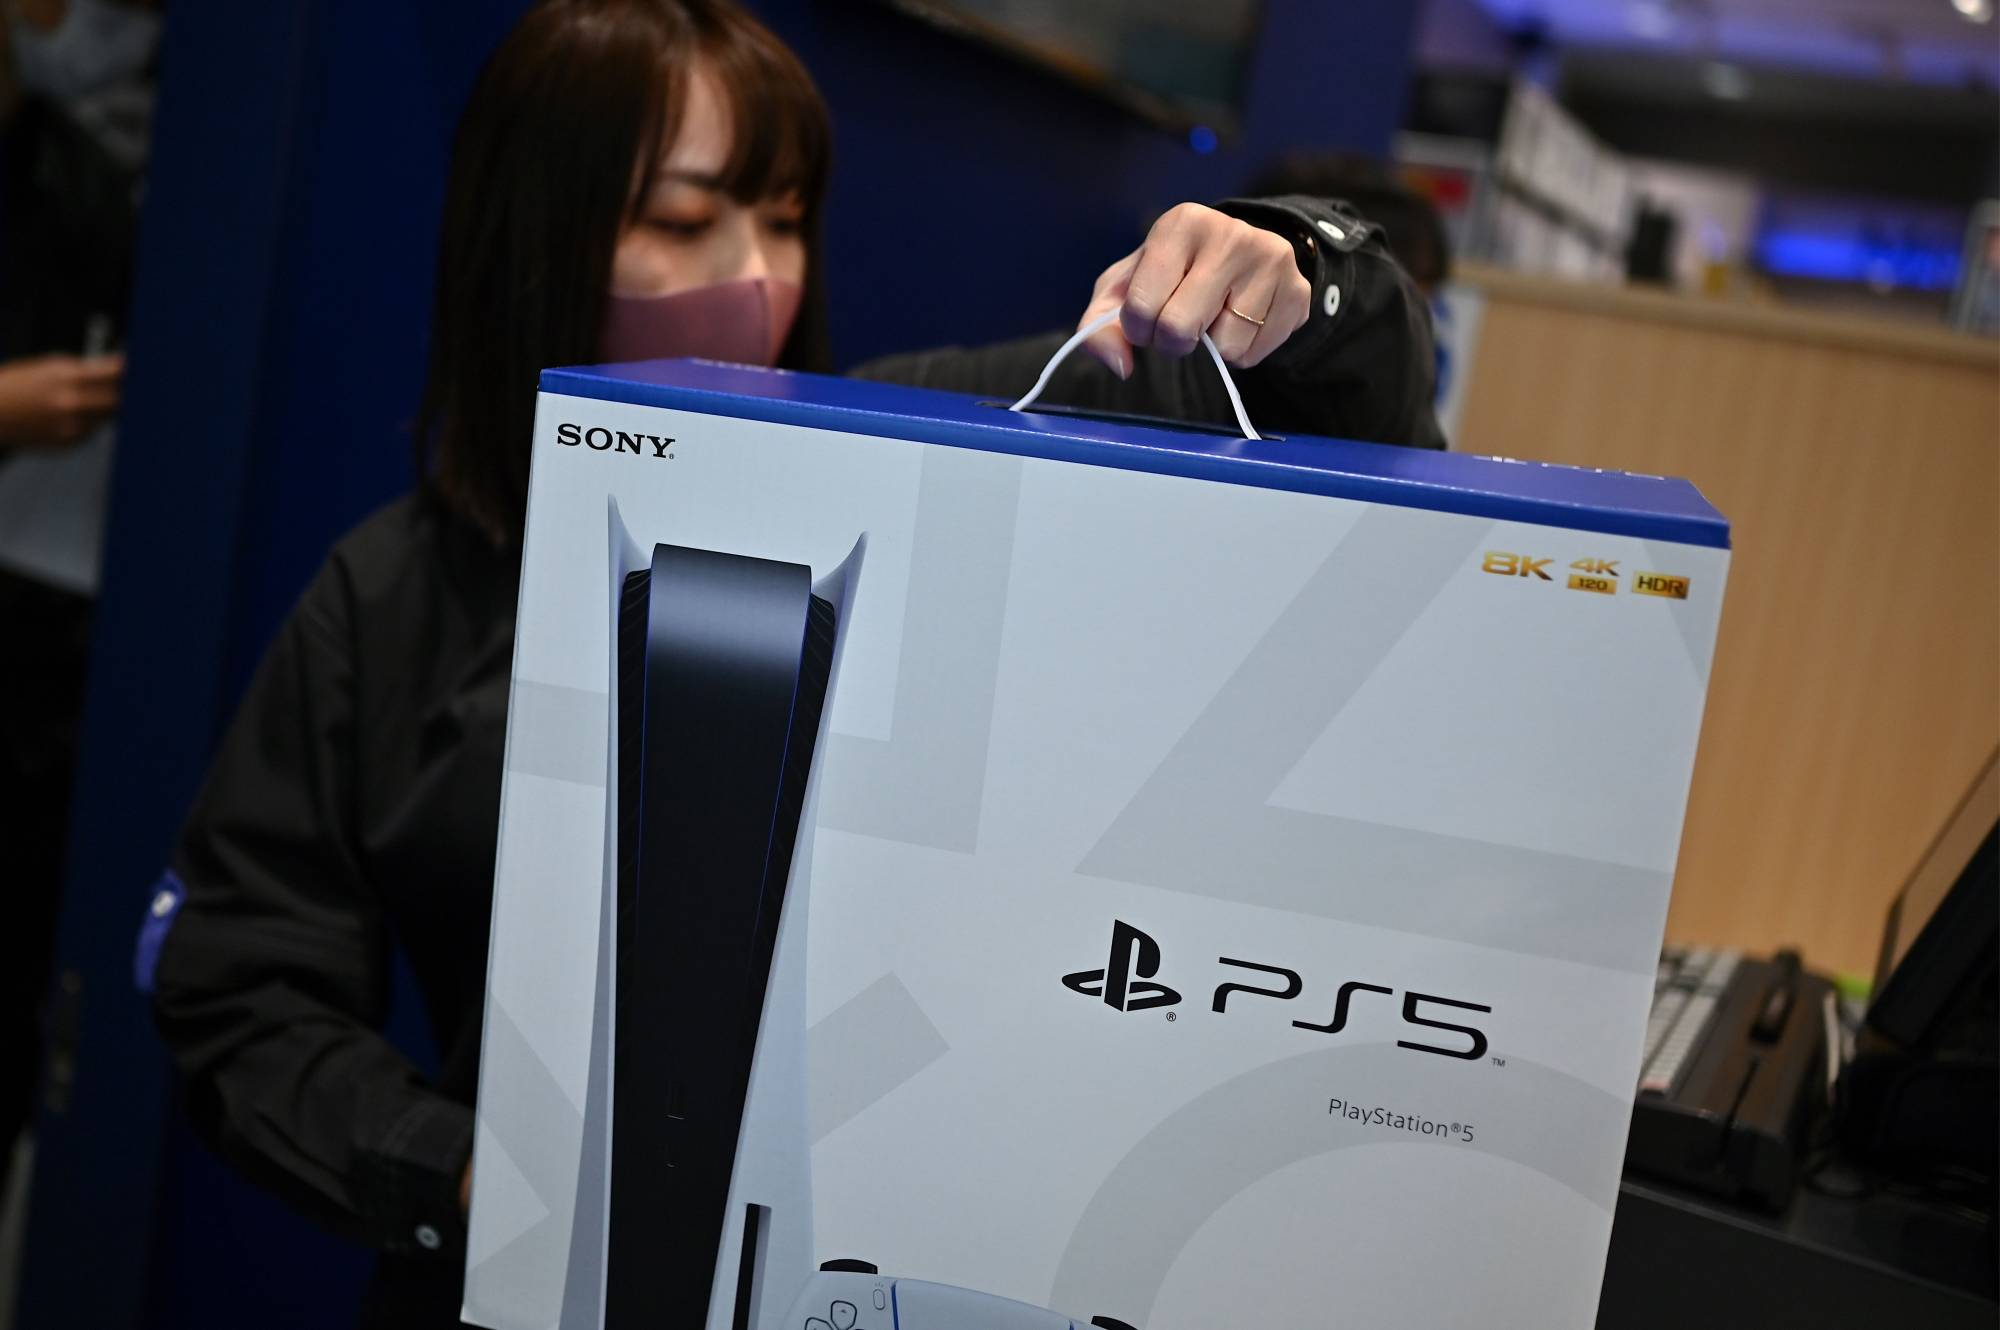 An employee prepares the new Sony PlayStation 5 gaming console for a customer on the first day of its launch, at an electronics shop in Kawasaki on Thursday. | AFP-JIJI